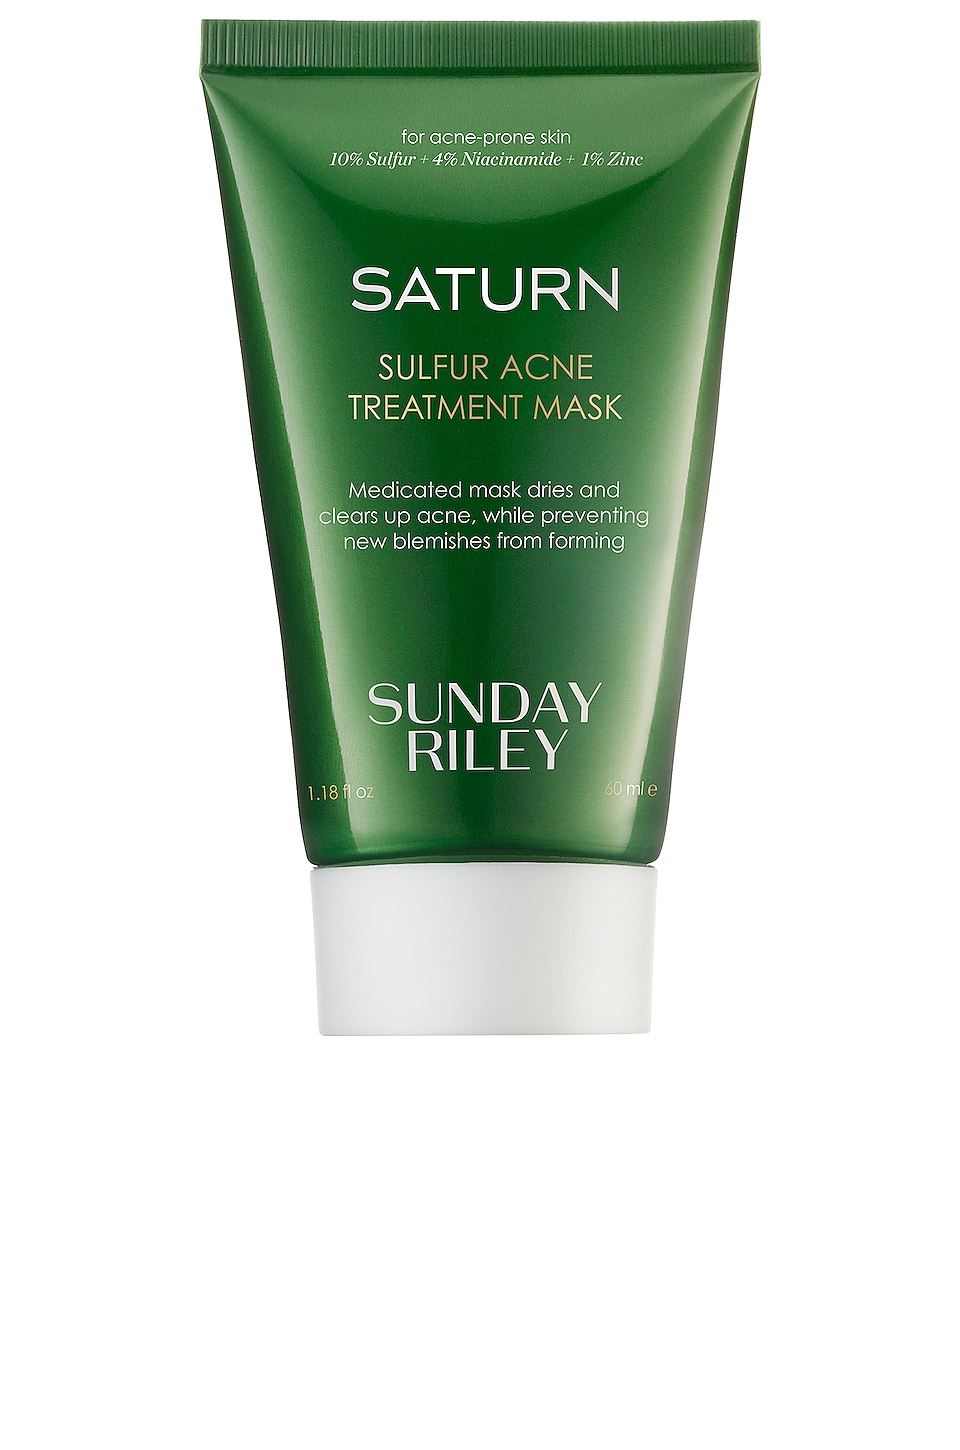 Sunday Riley Saturn Sulfur Acne Treatment Mask